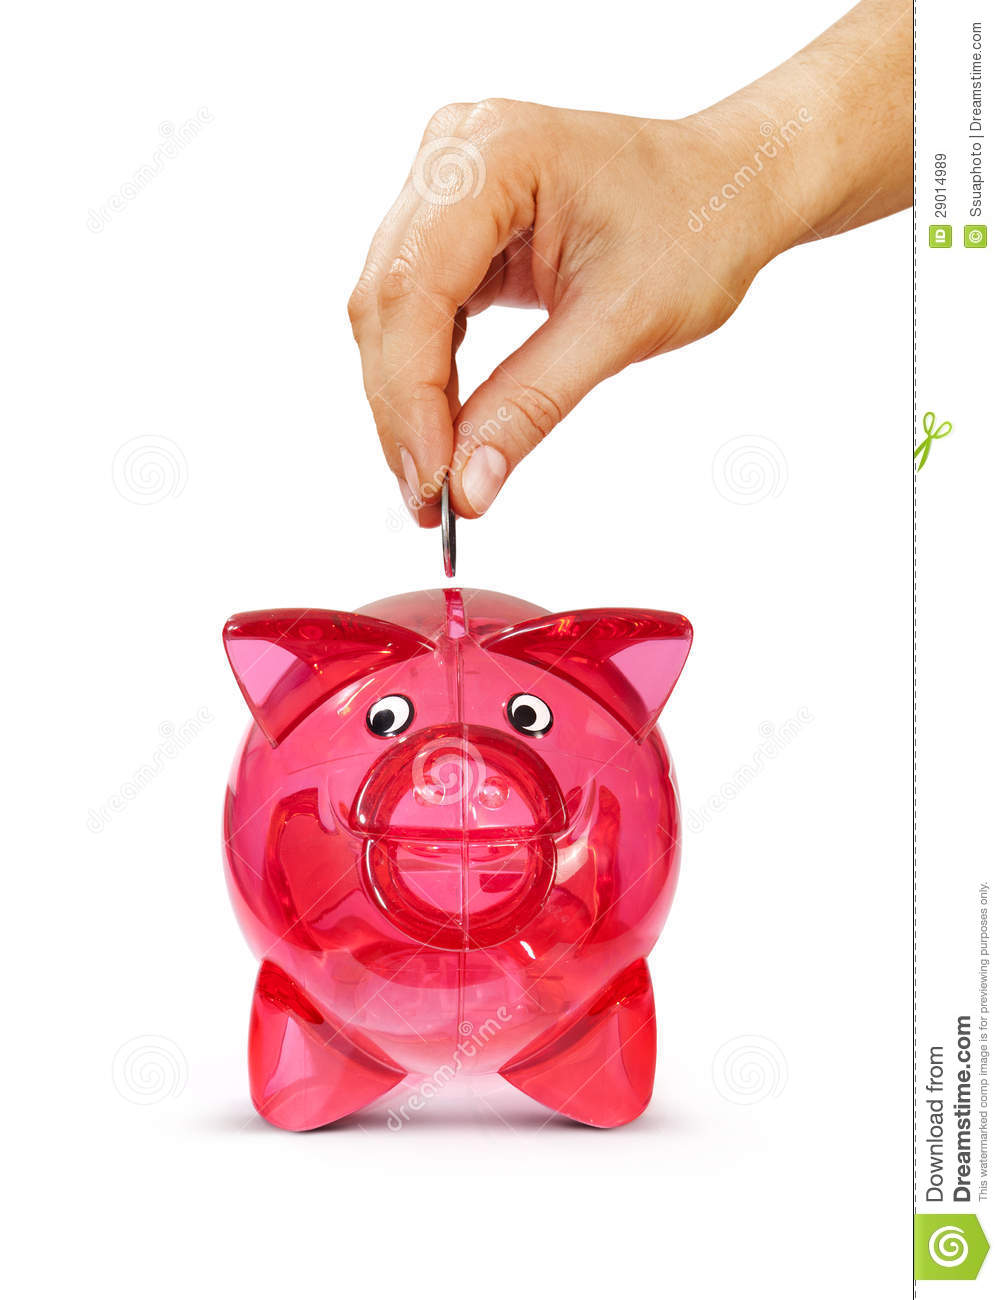 hand putting coin into piggy bank stock image